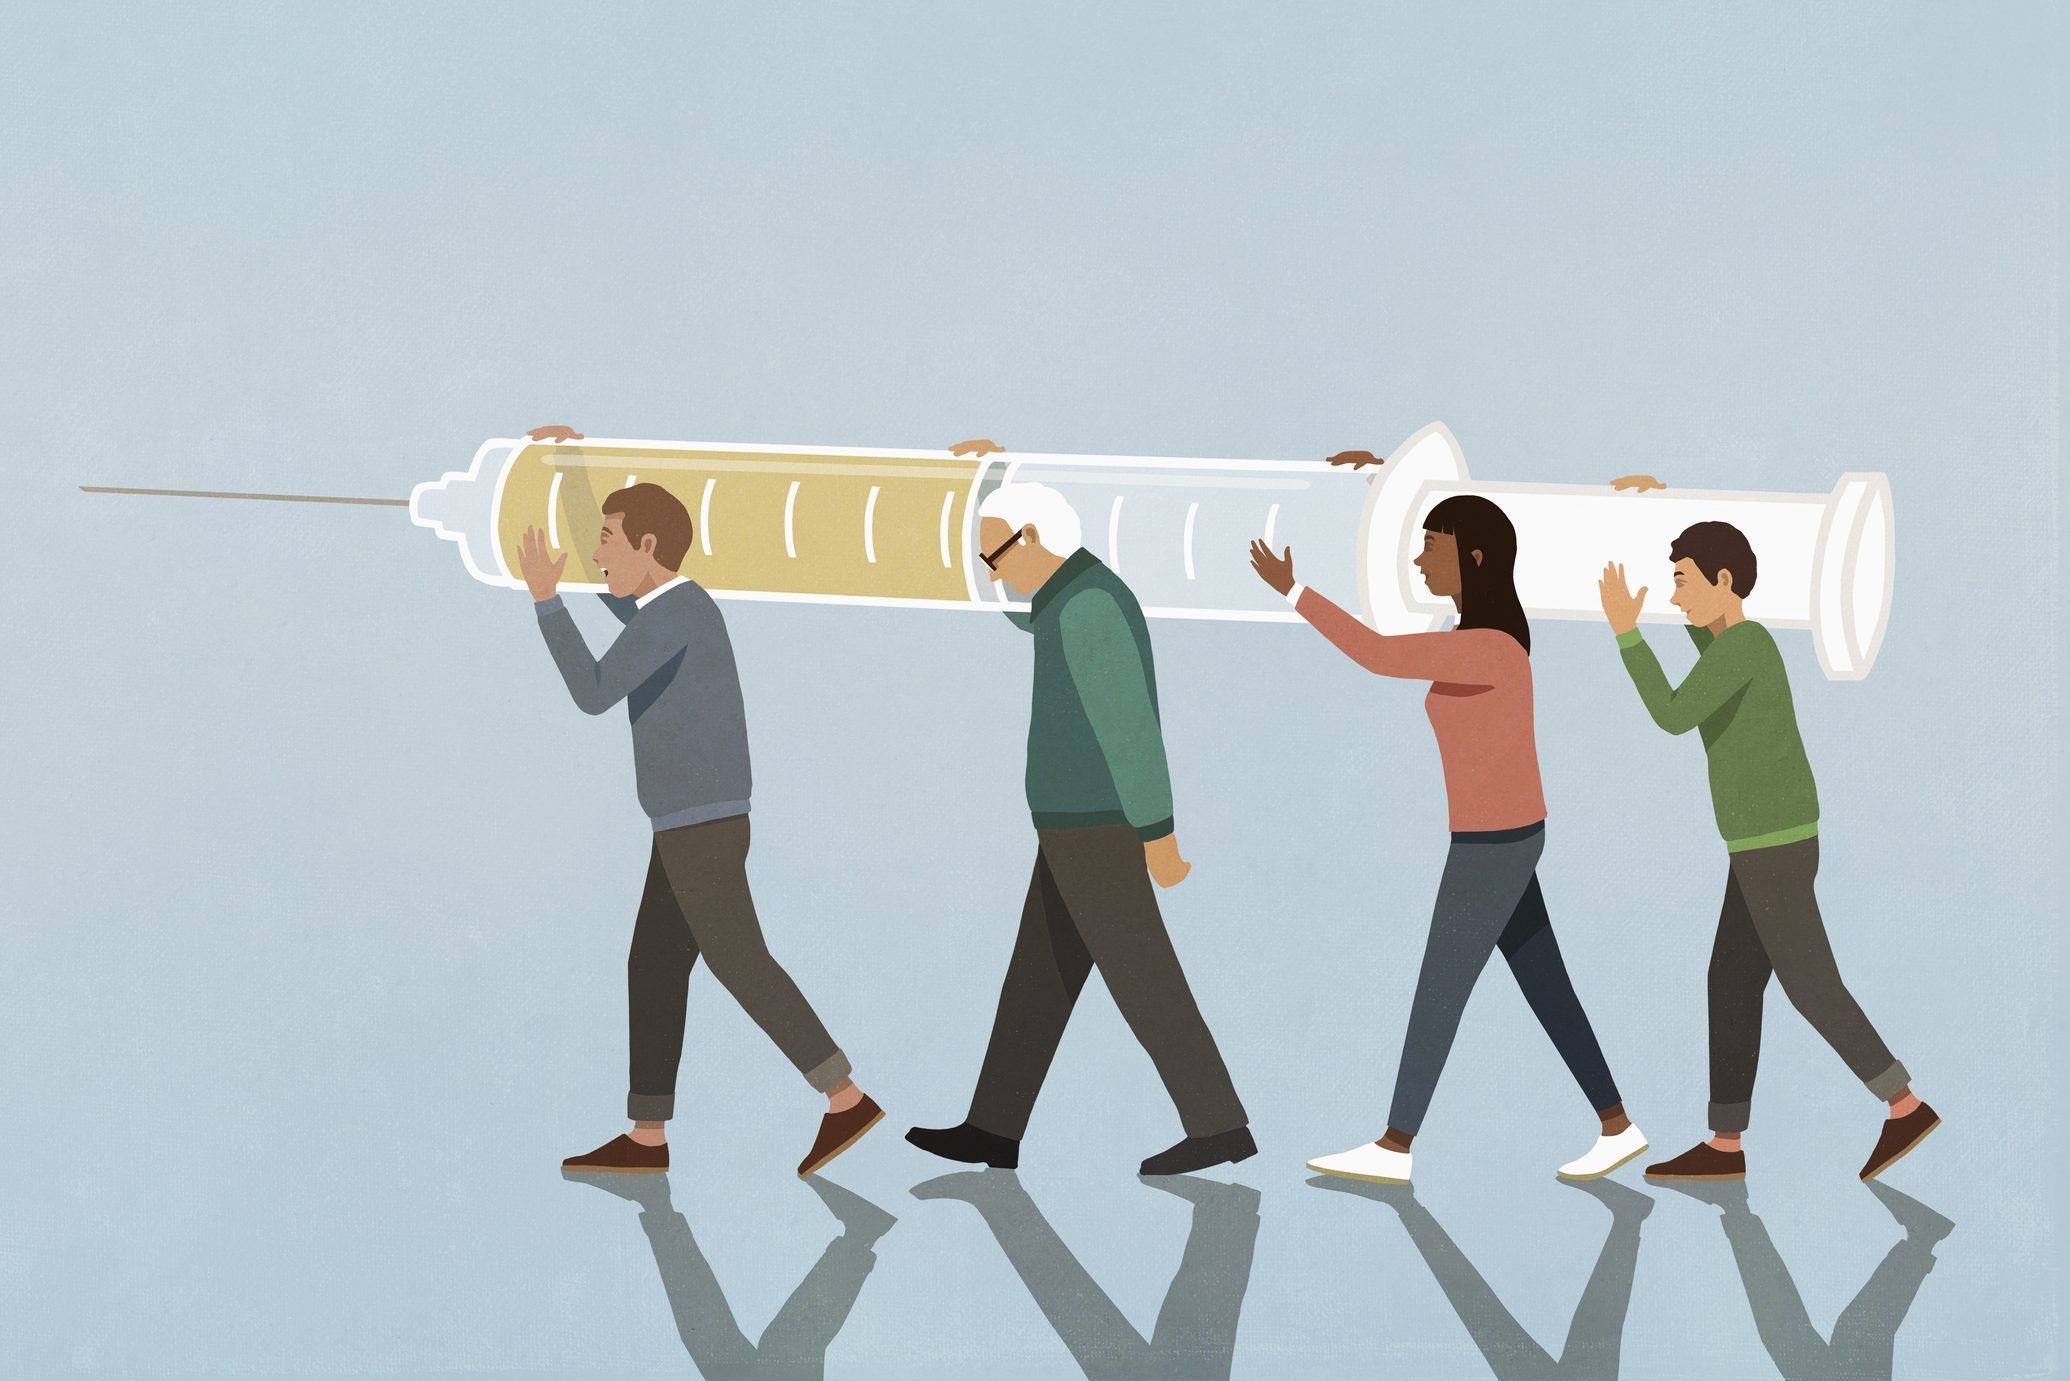 Community carrying large vaccination syringe